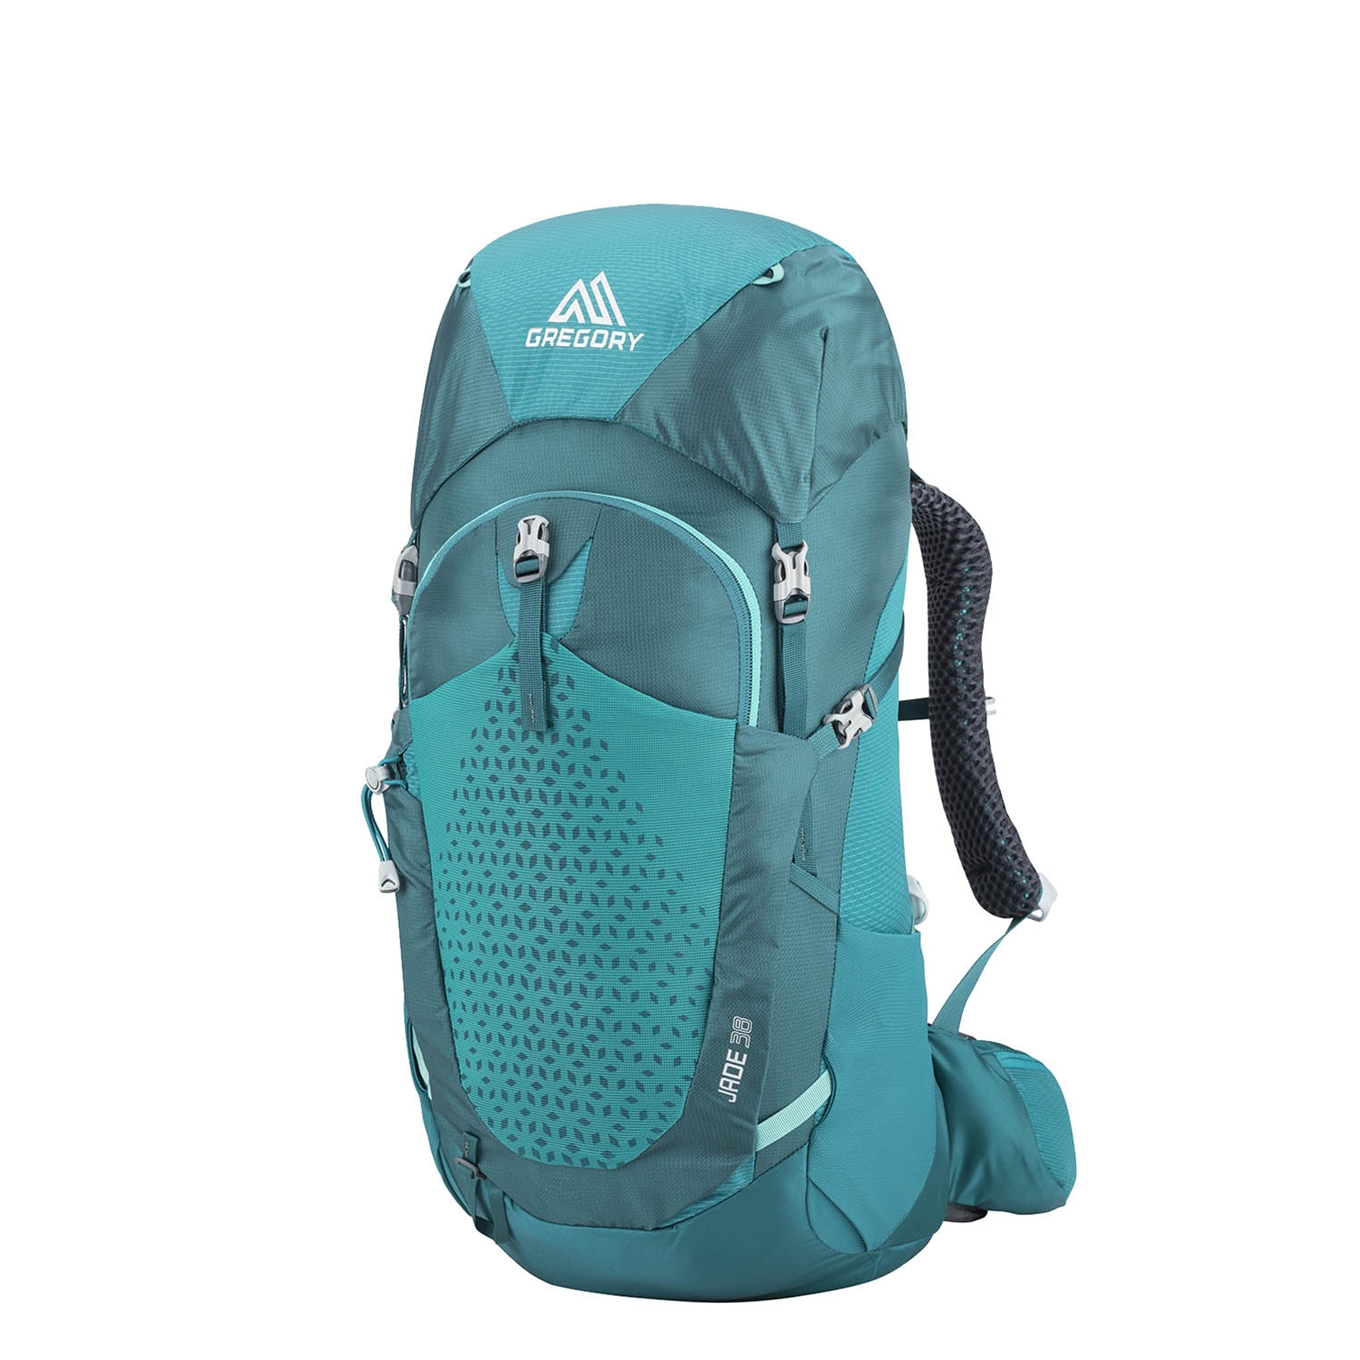 Gregory Jade 38L Backpack S/M mayan teal backpack <br/></noscript><img class=